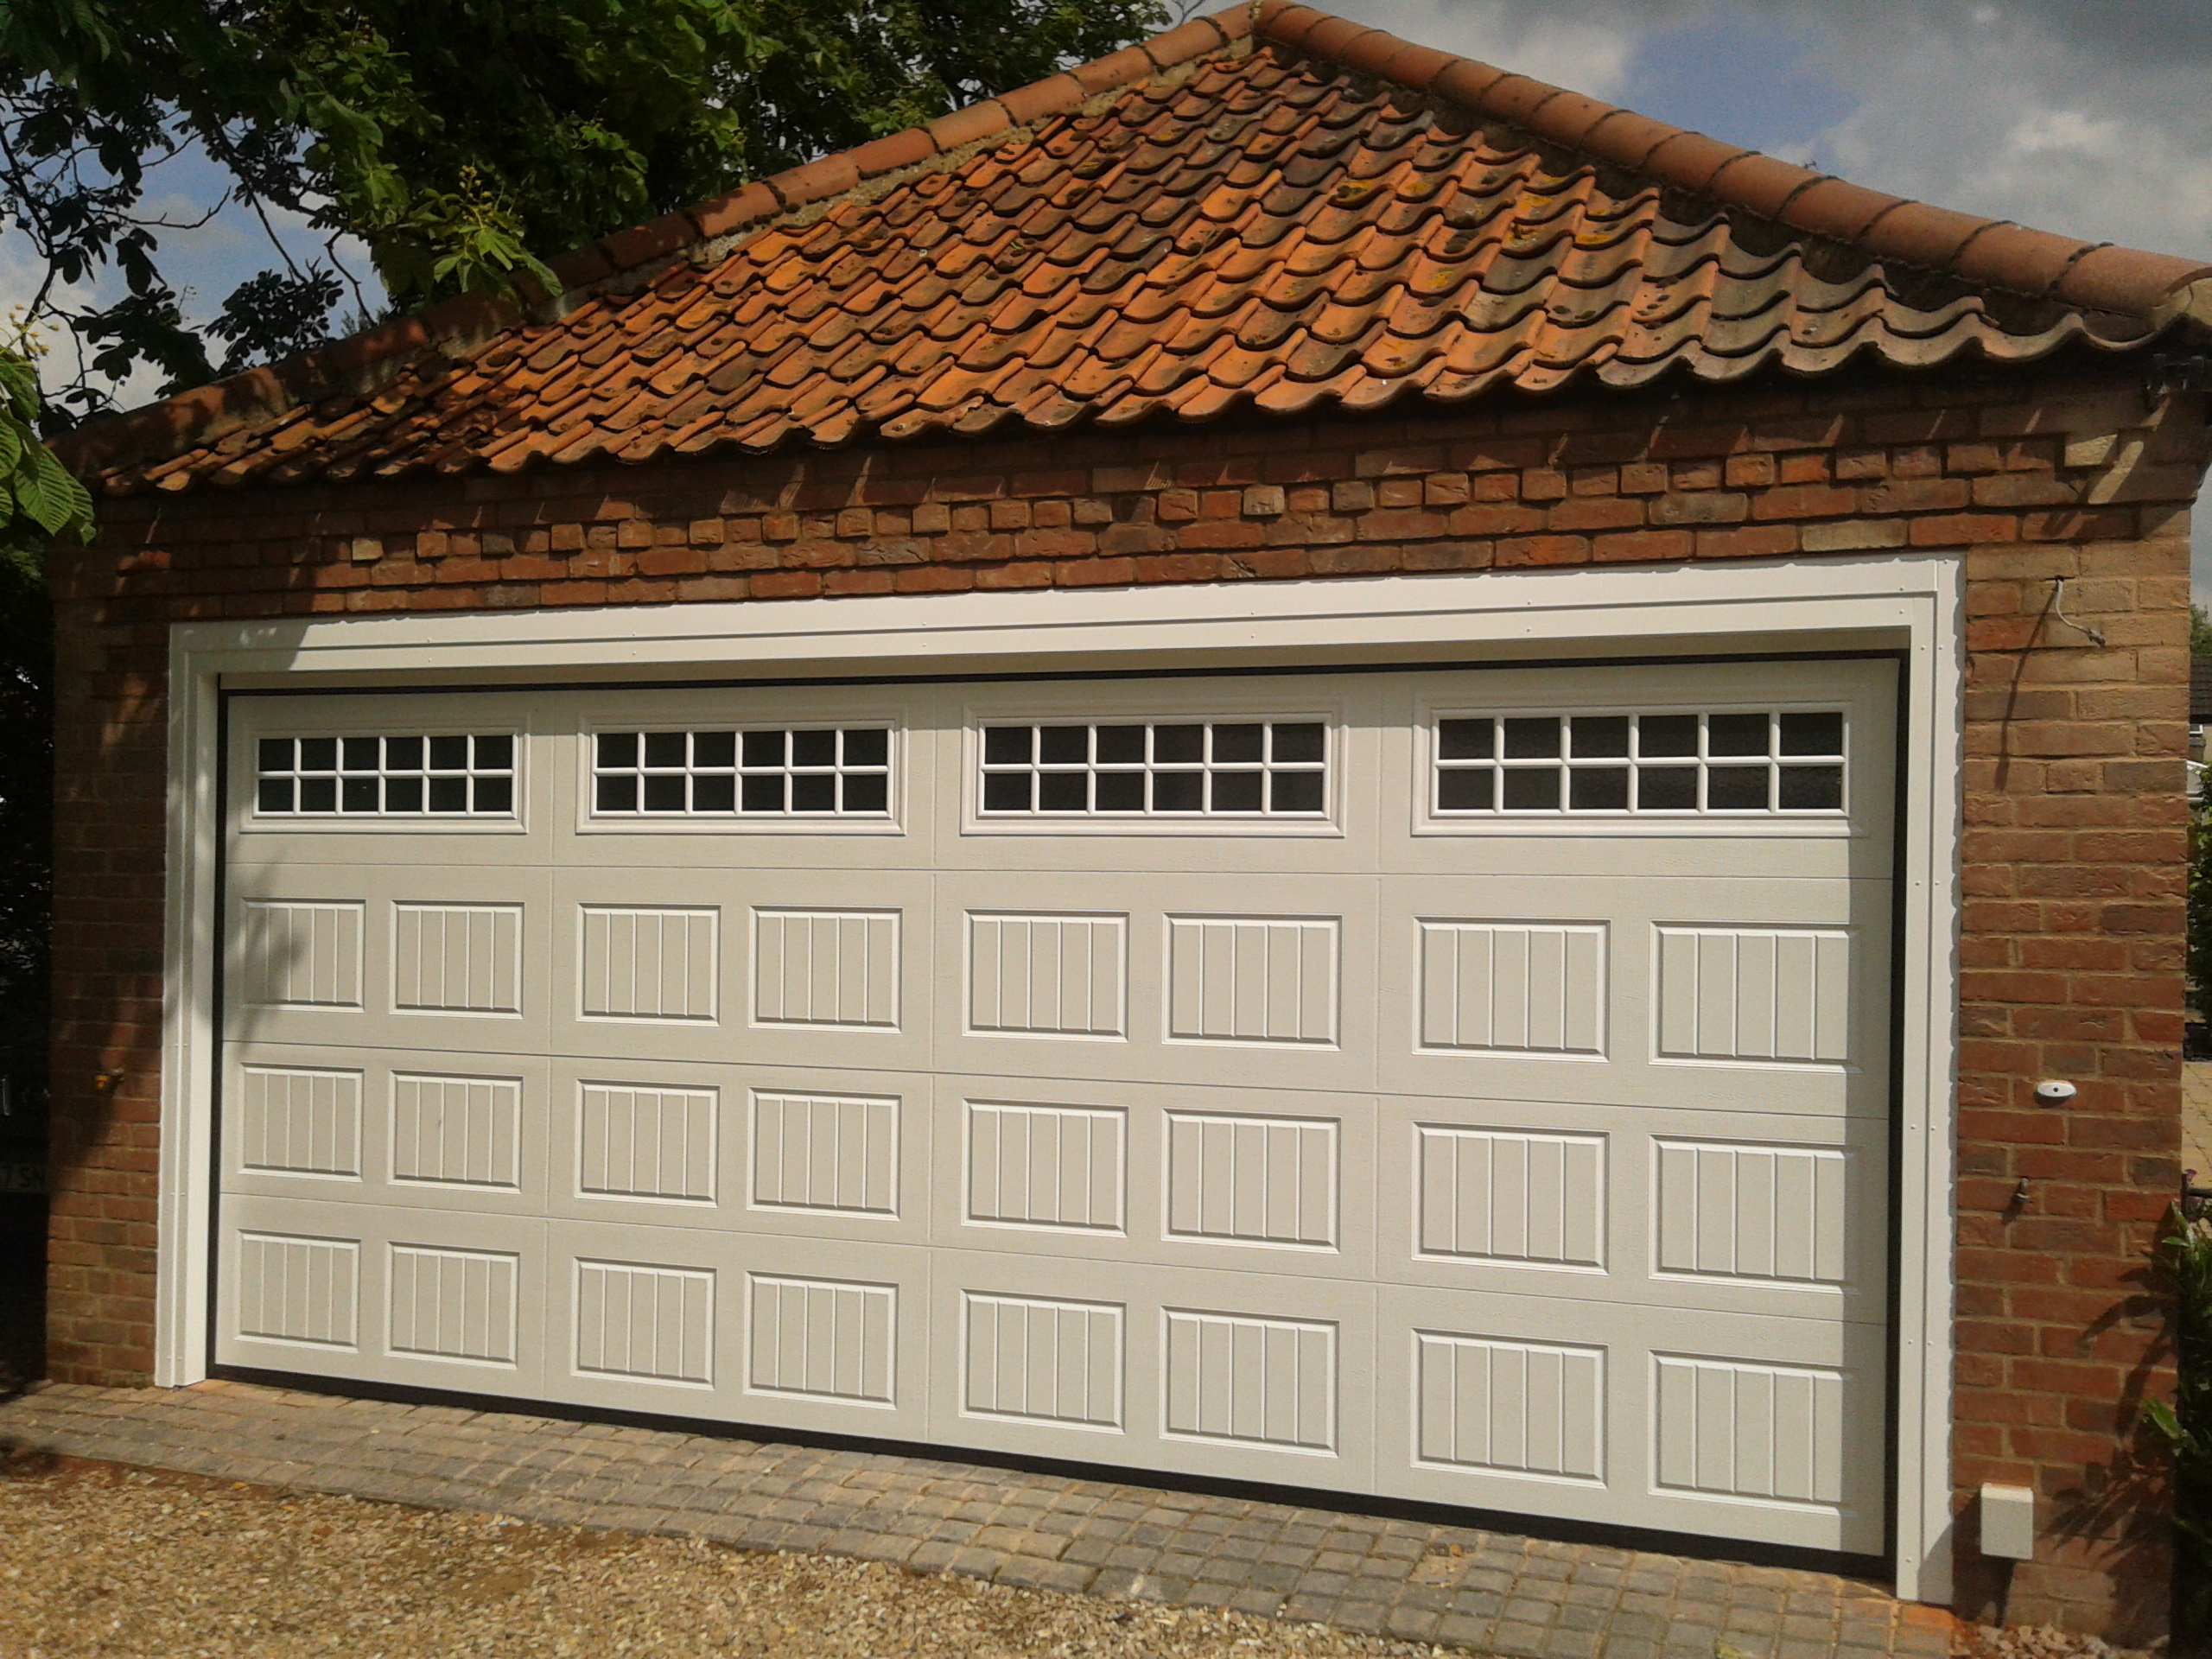 1920 #9E5D2D Double Automatic Garage Door – Garage Door Company Grantham picture/photo Garage Doors Near Me 37392560